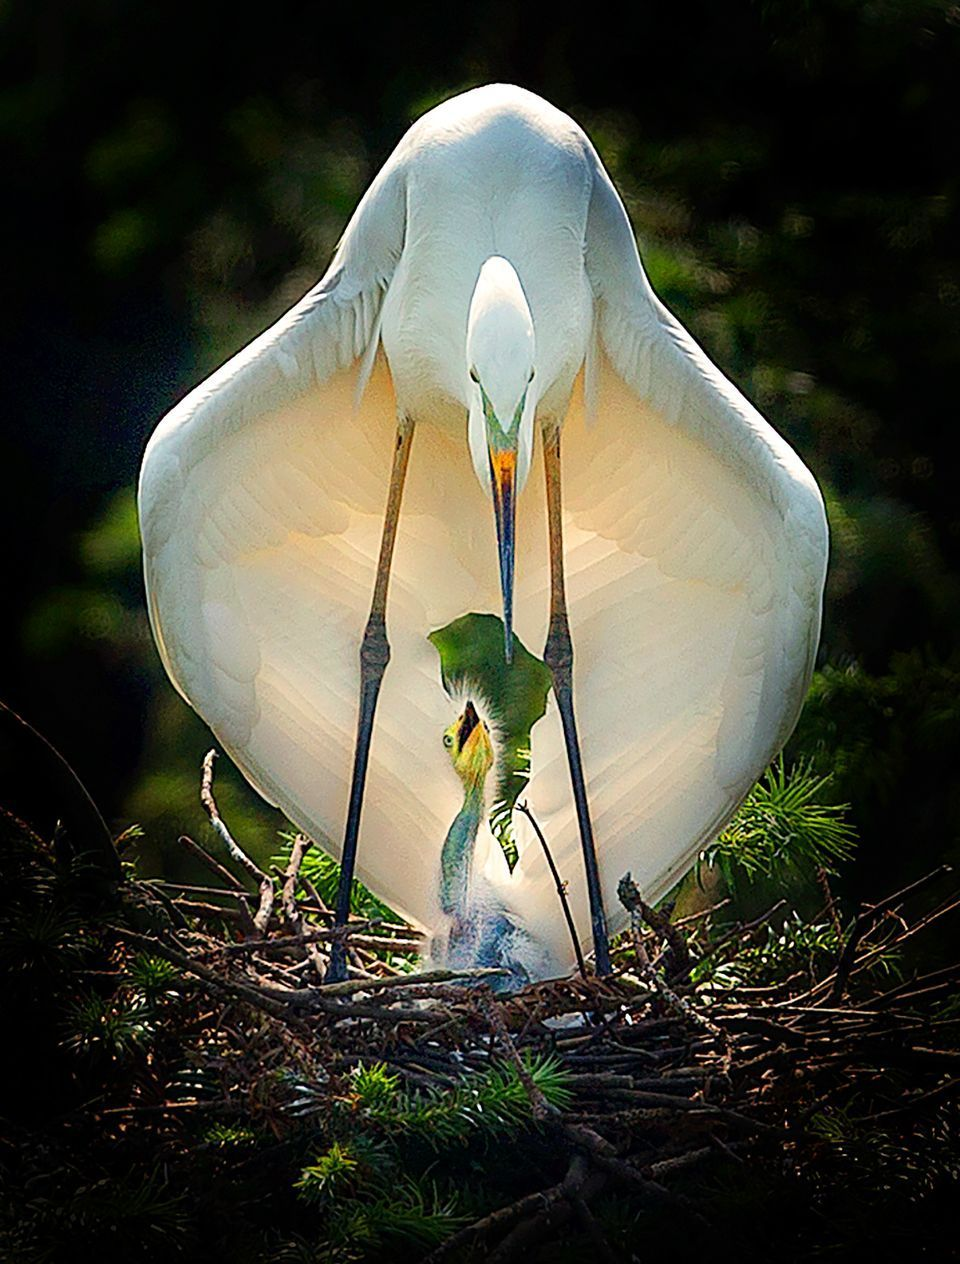 Mother S Embrace By Fuyang Zhou 2017 National Geographic Nature Photographer Of The Year Birds Animals Beautiful Nature Animals